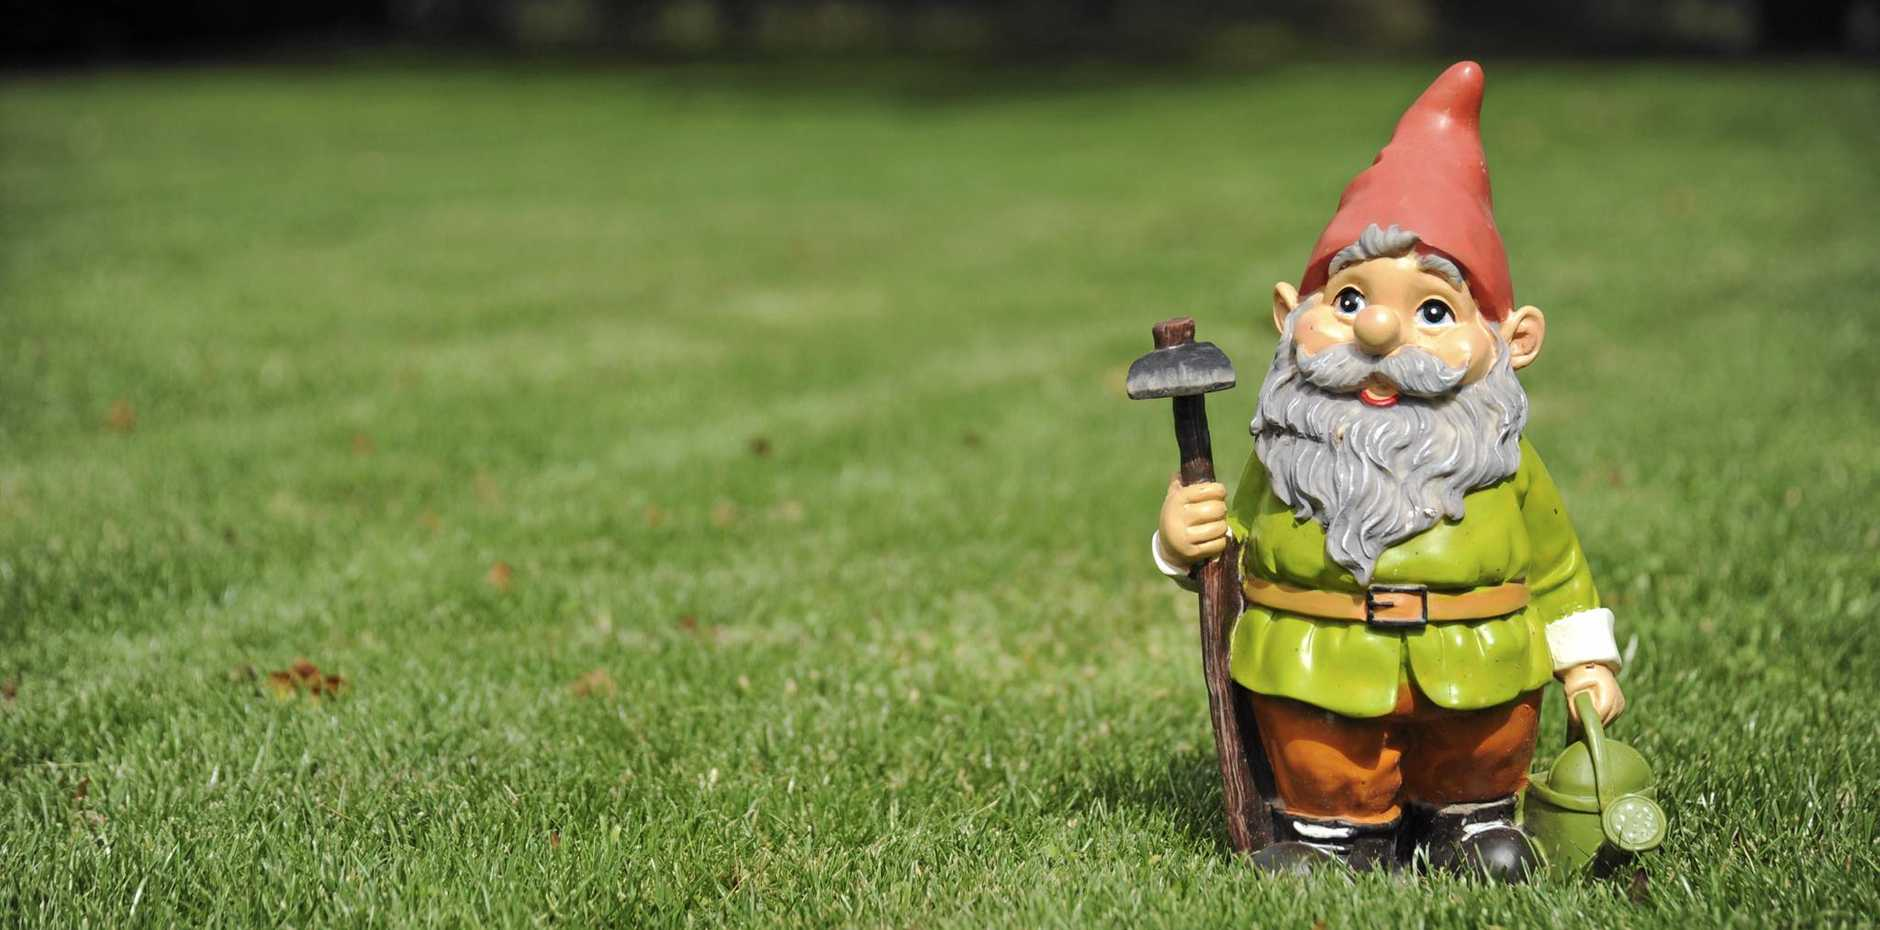 Gnome on grass